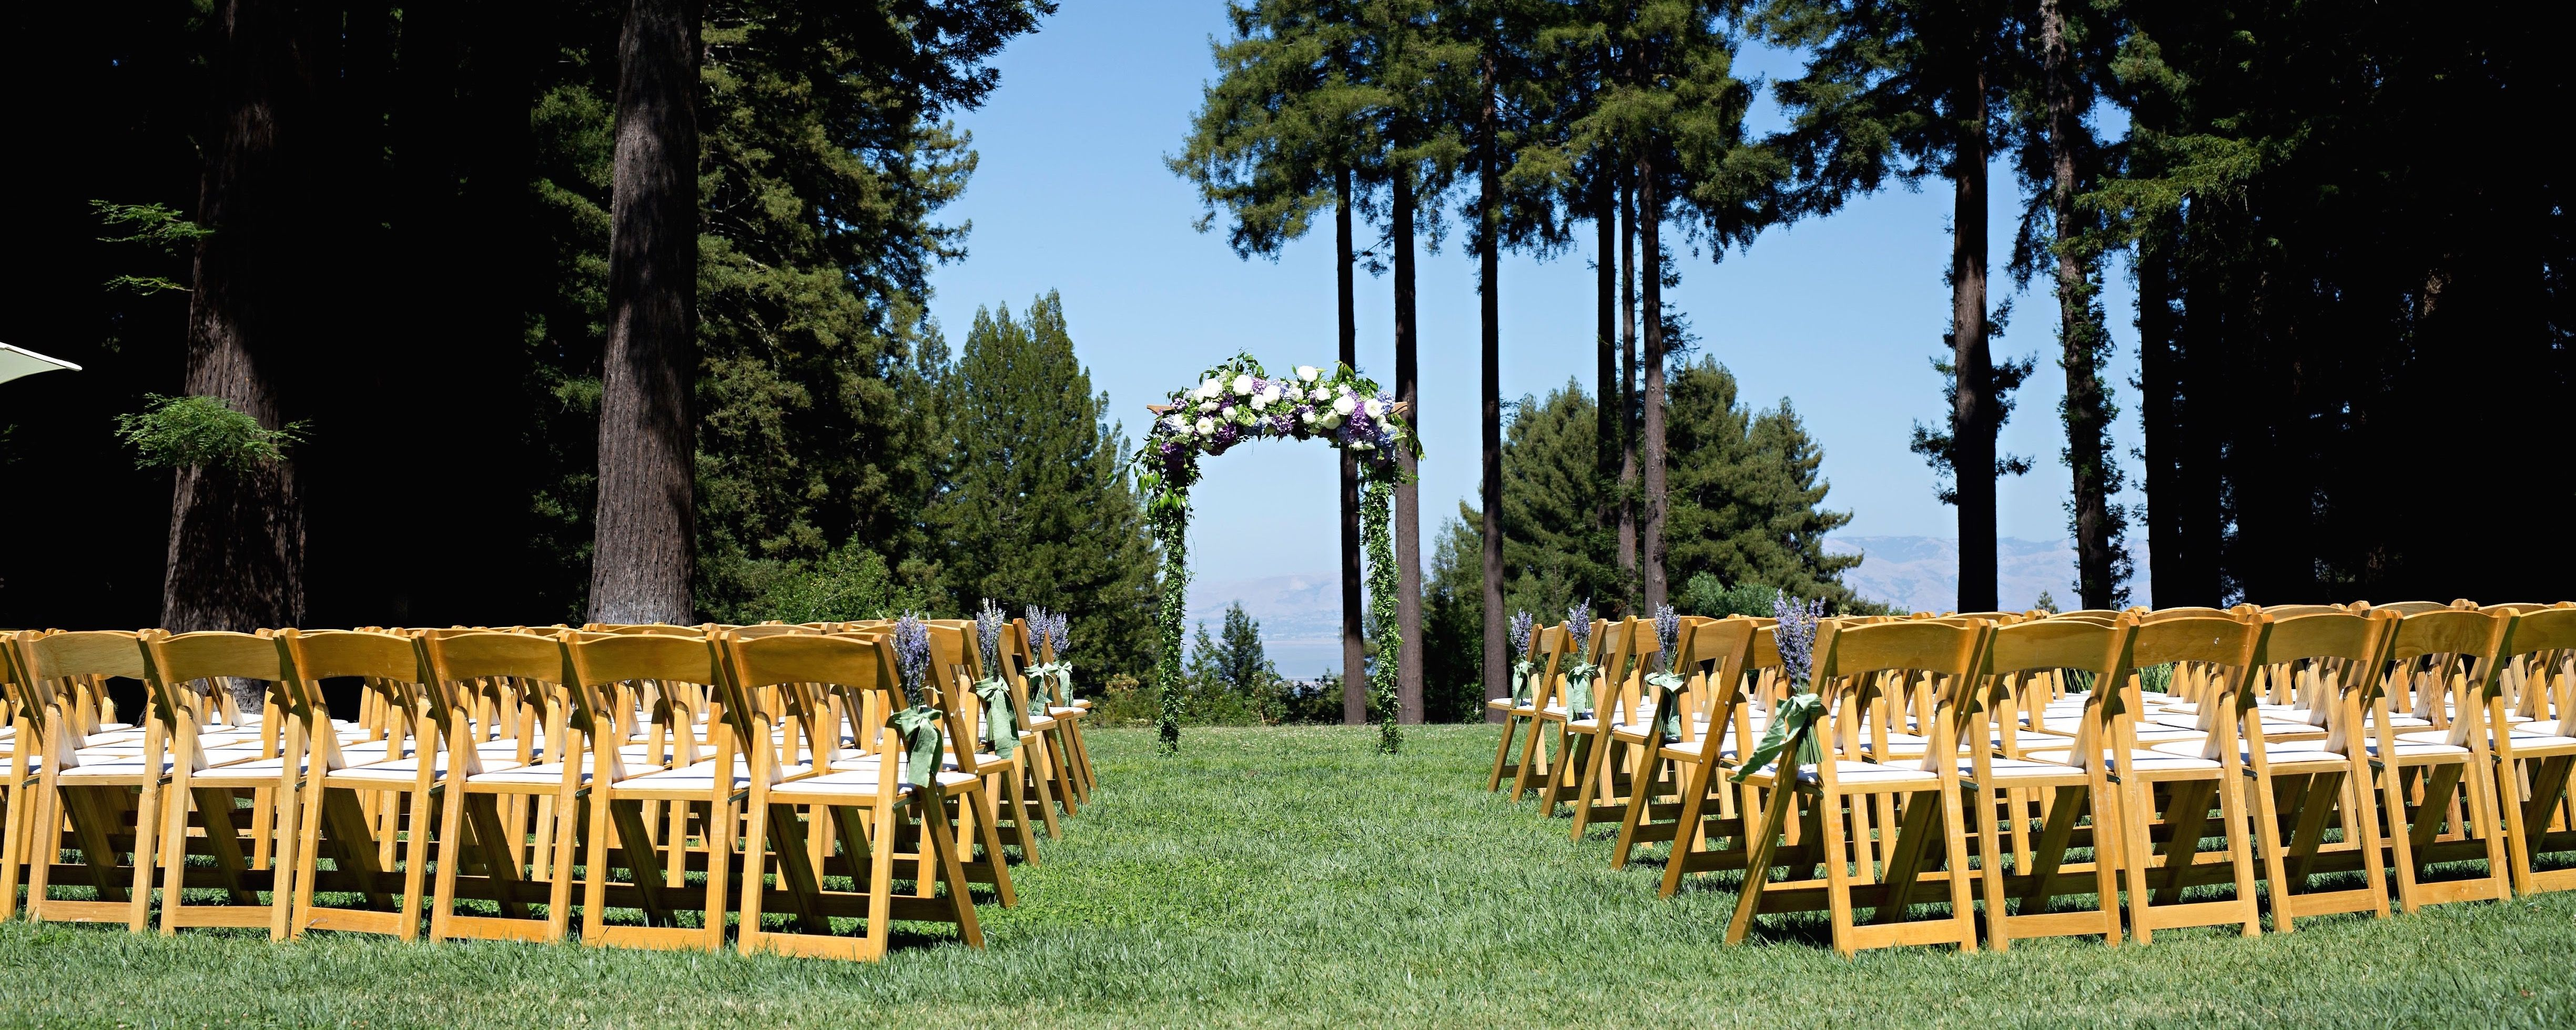 Wedding arch at The Mountain Terrace (With images) Party